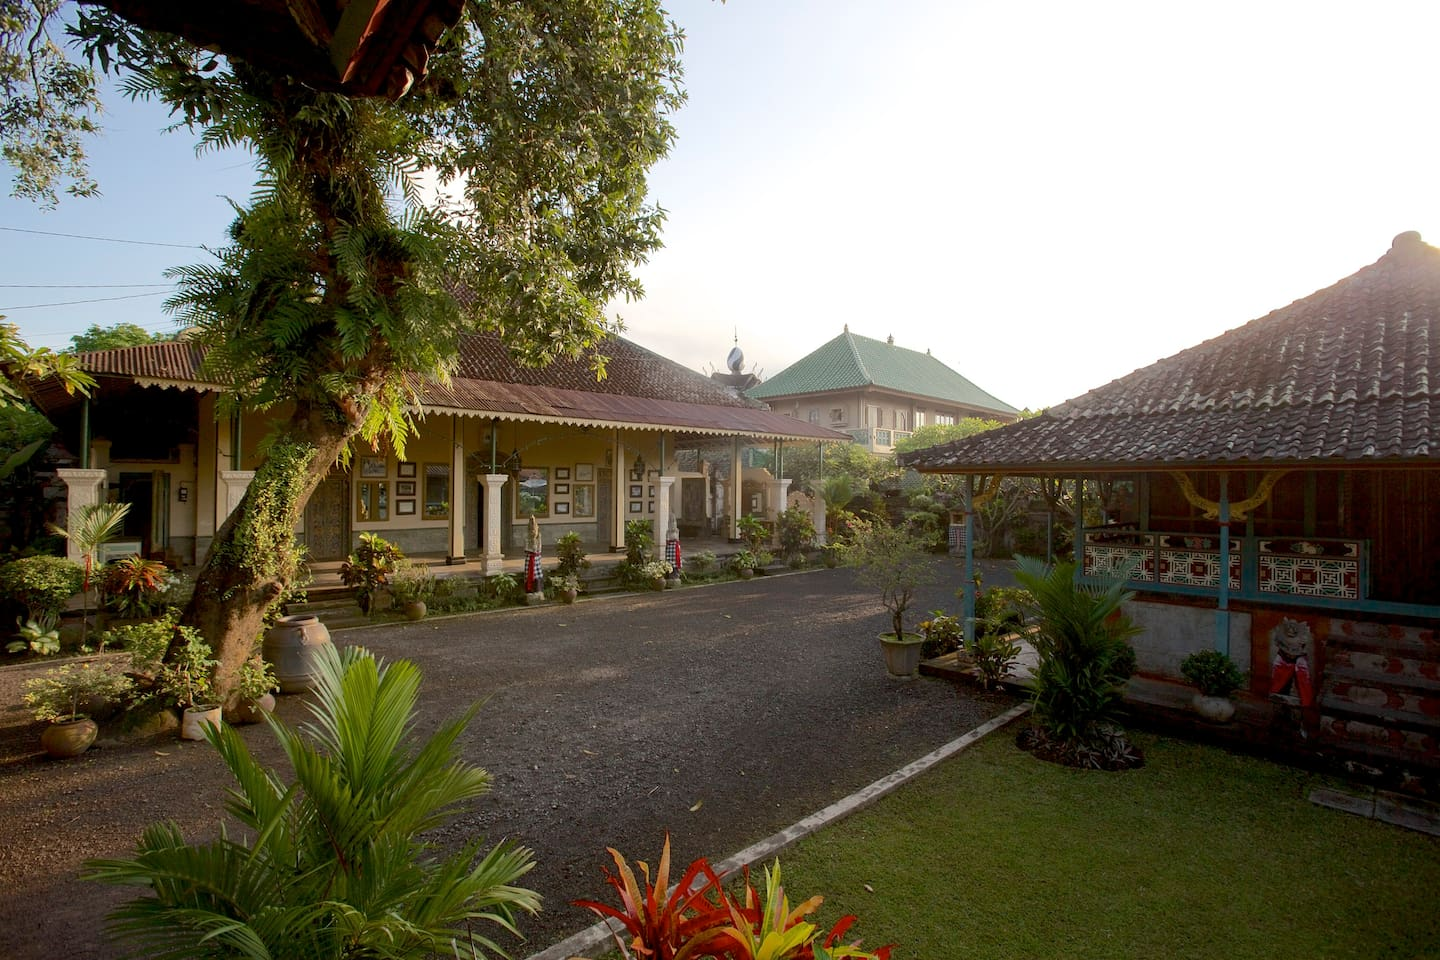 Welcome to Puri Agung Karangasem, this is the main hall in the middle of the palace courtyard.